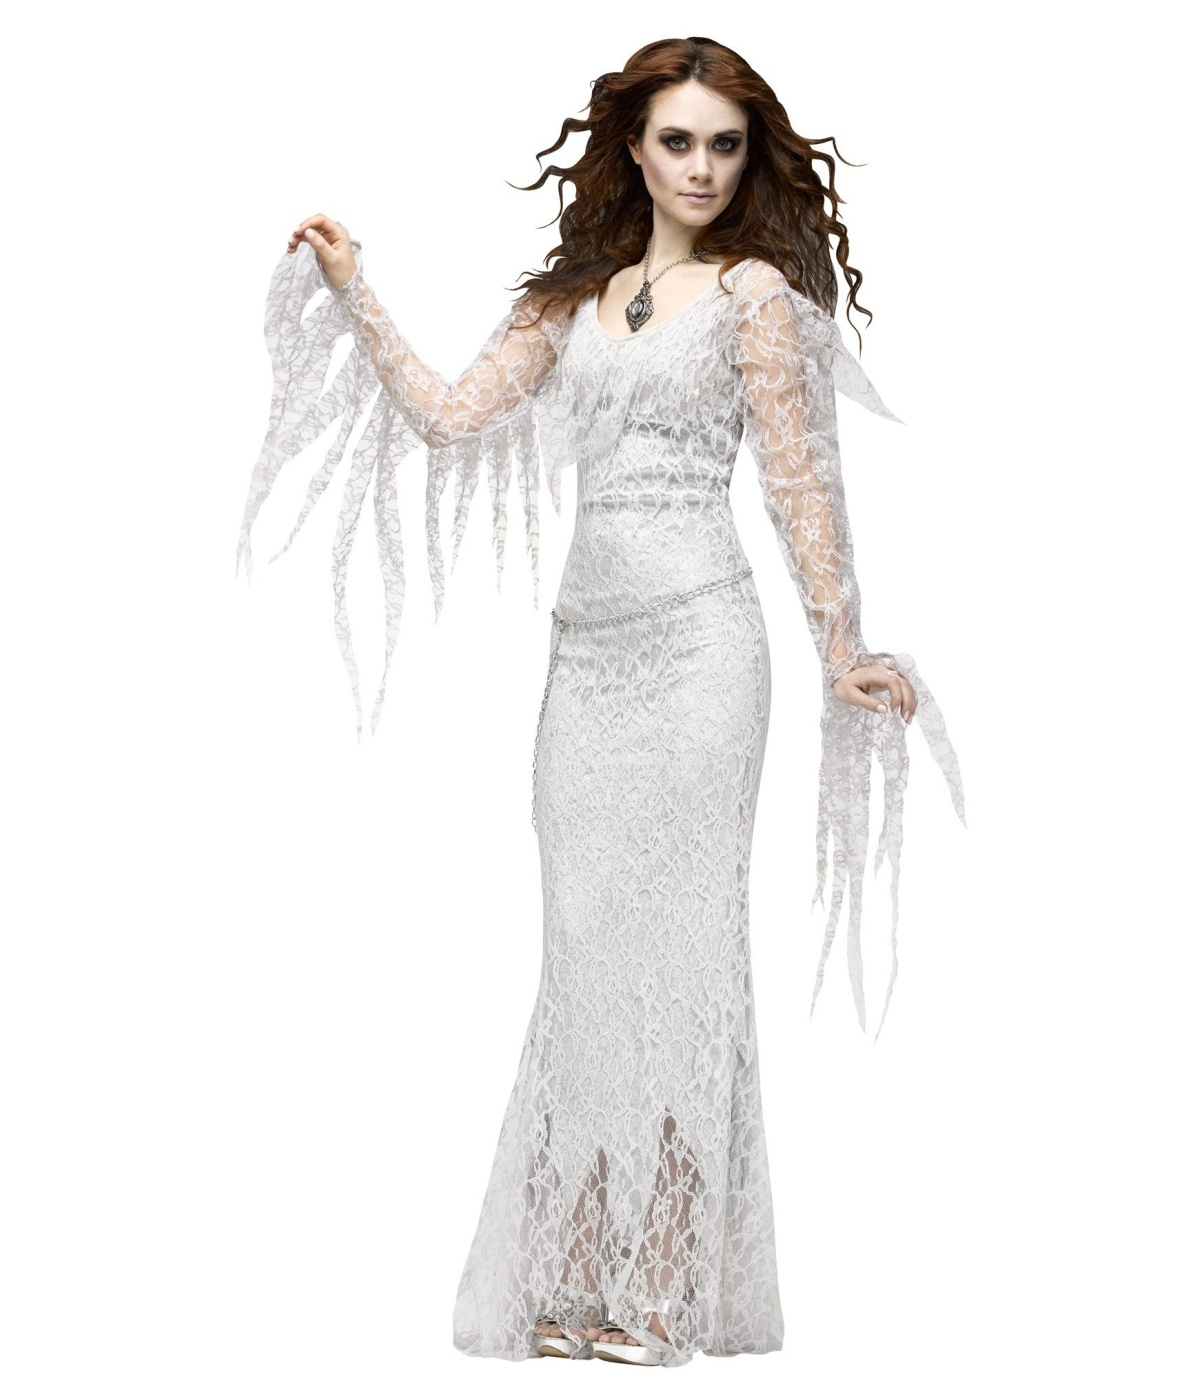 costumes adult costumes women costumes ghost maiden womens